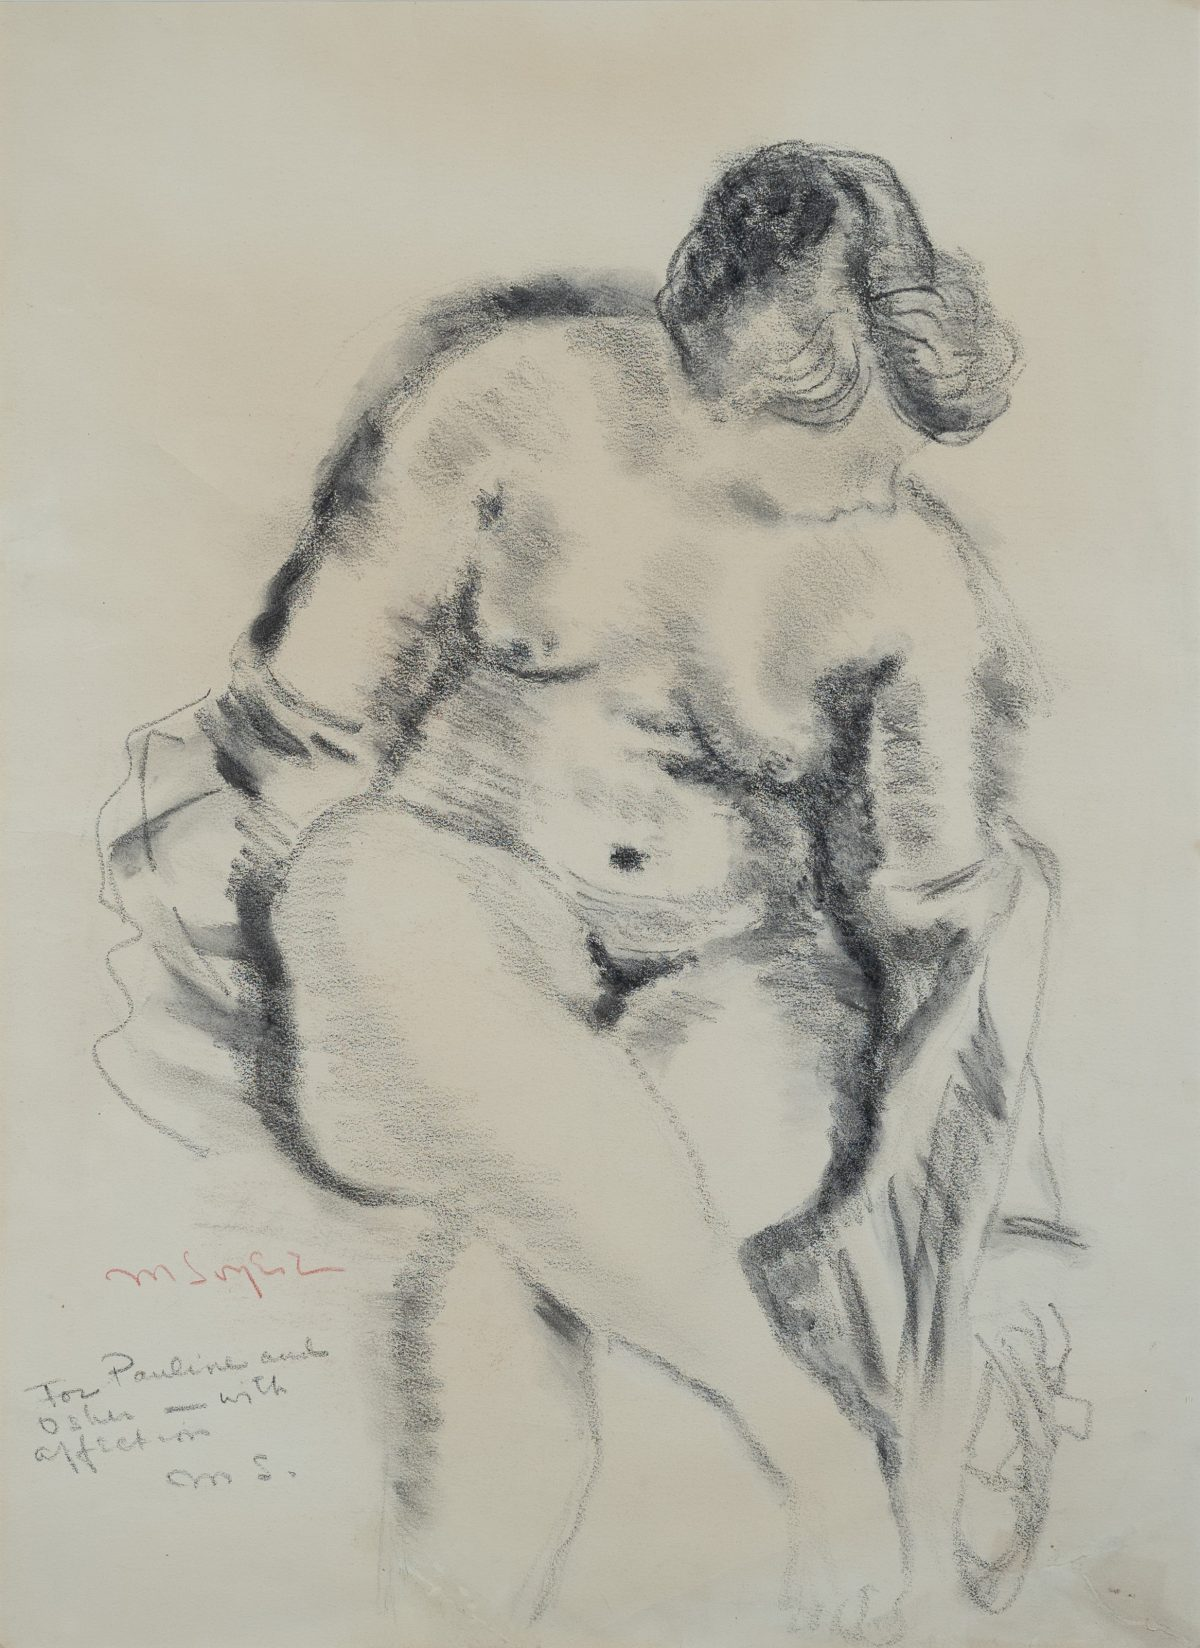 Moses Soyer - Nude